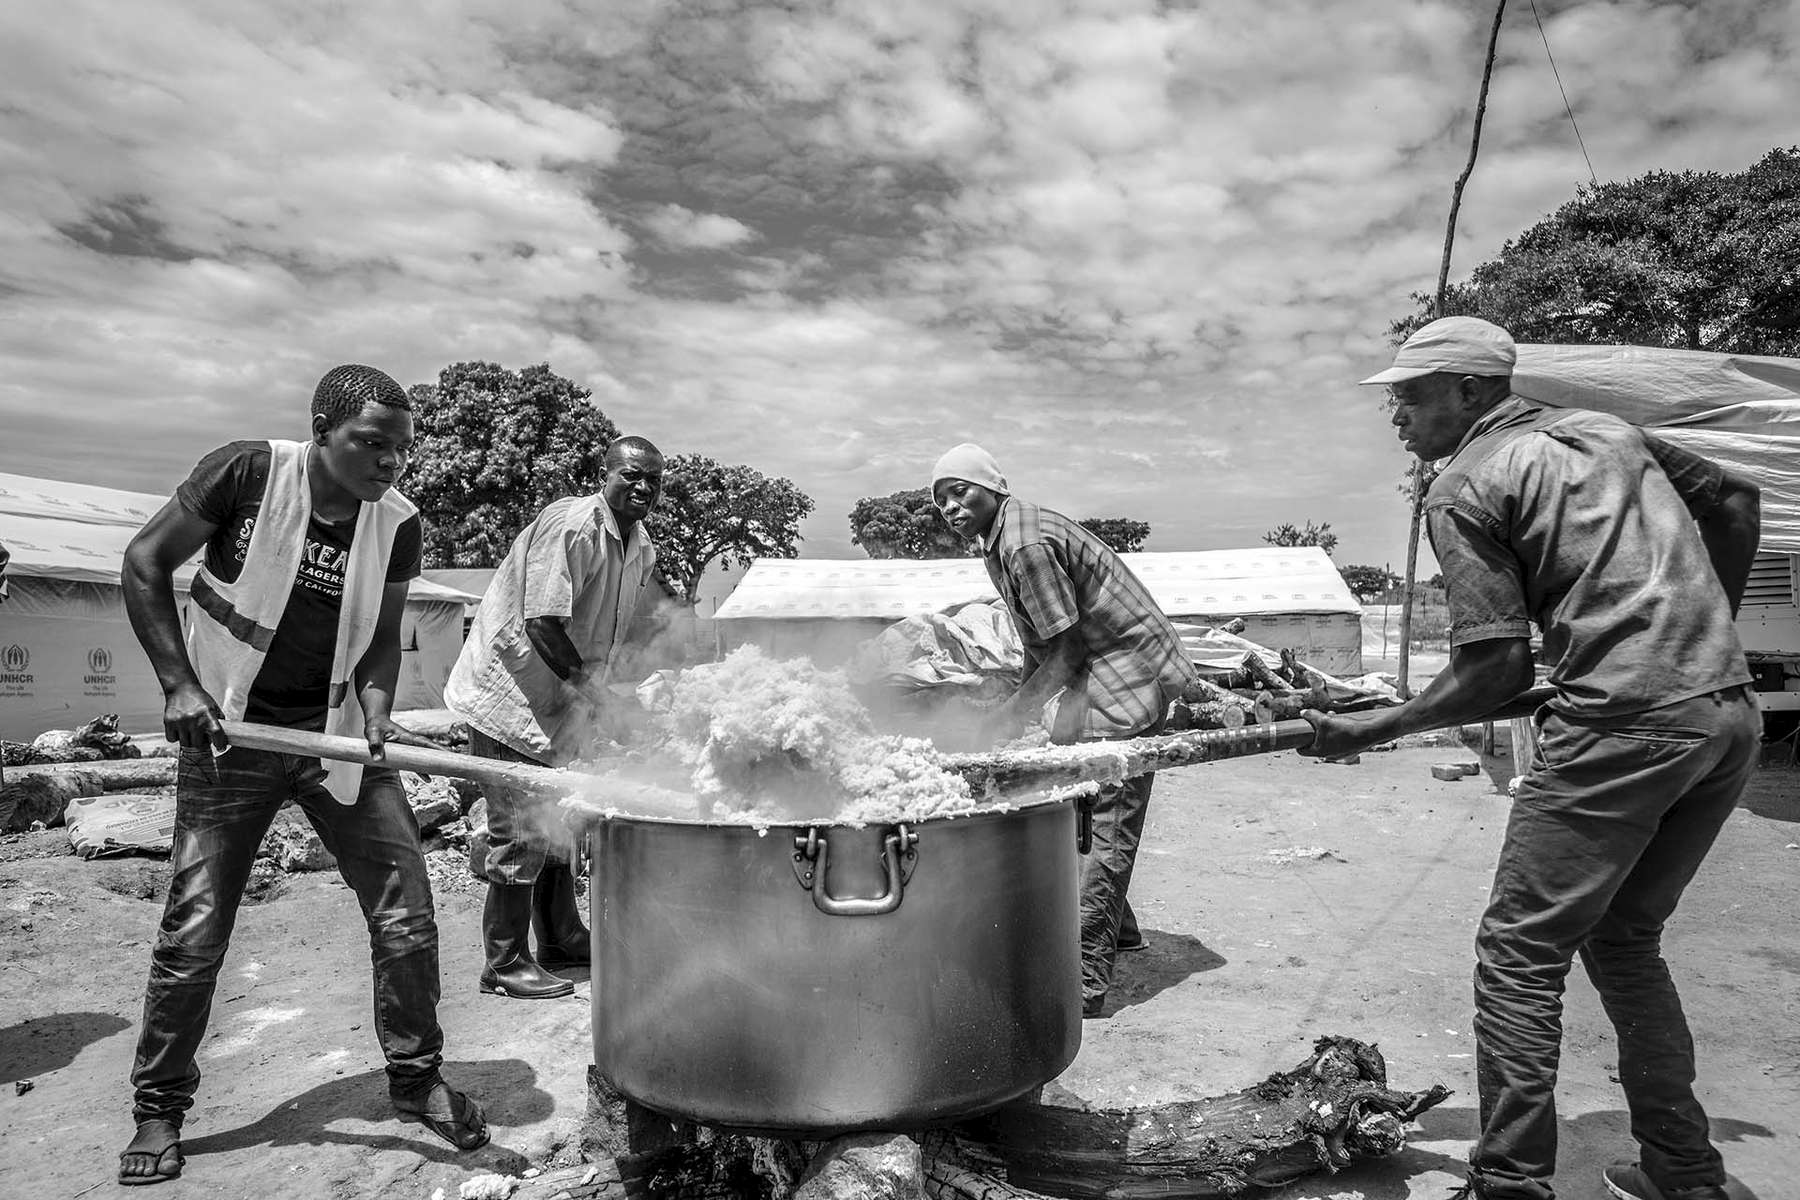 Hot corn meal is being prepared for the recently arrived South Sudanese refugees at Kuluba collection point in Koboko district in Northern Uganda near South Sudan 1 May, 2017. © Jiro Ose